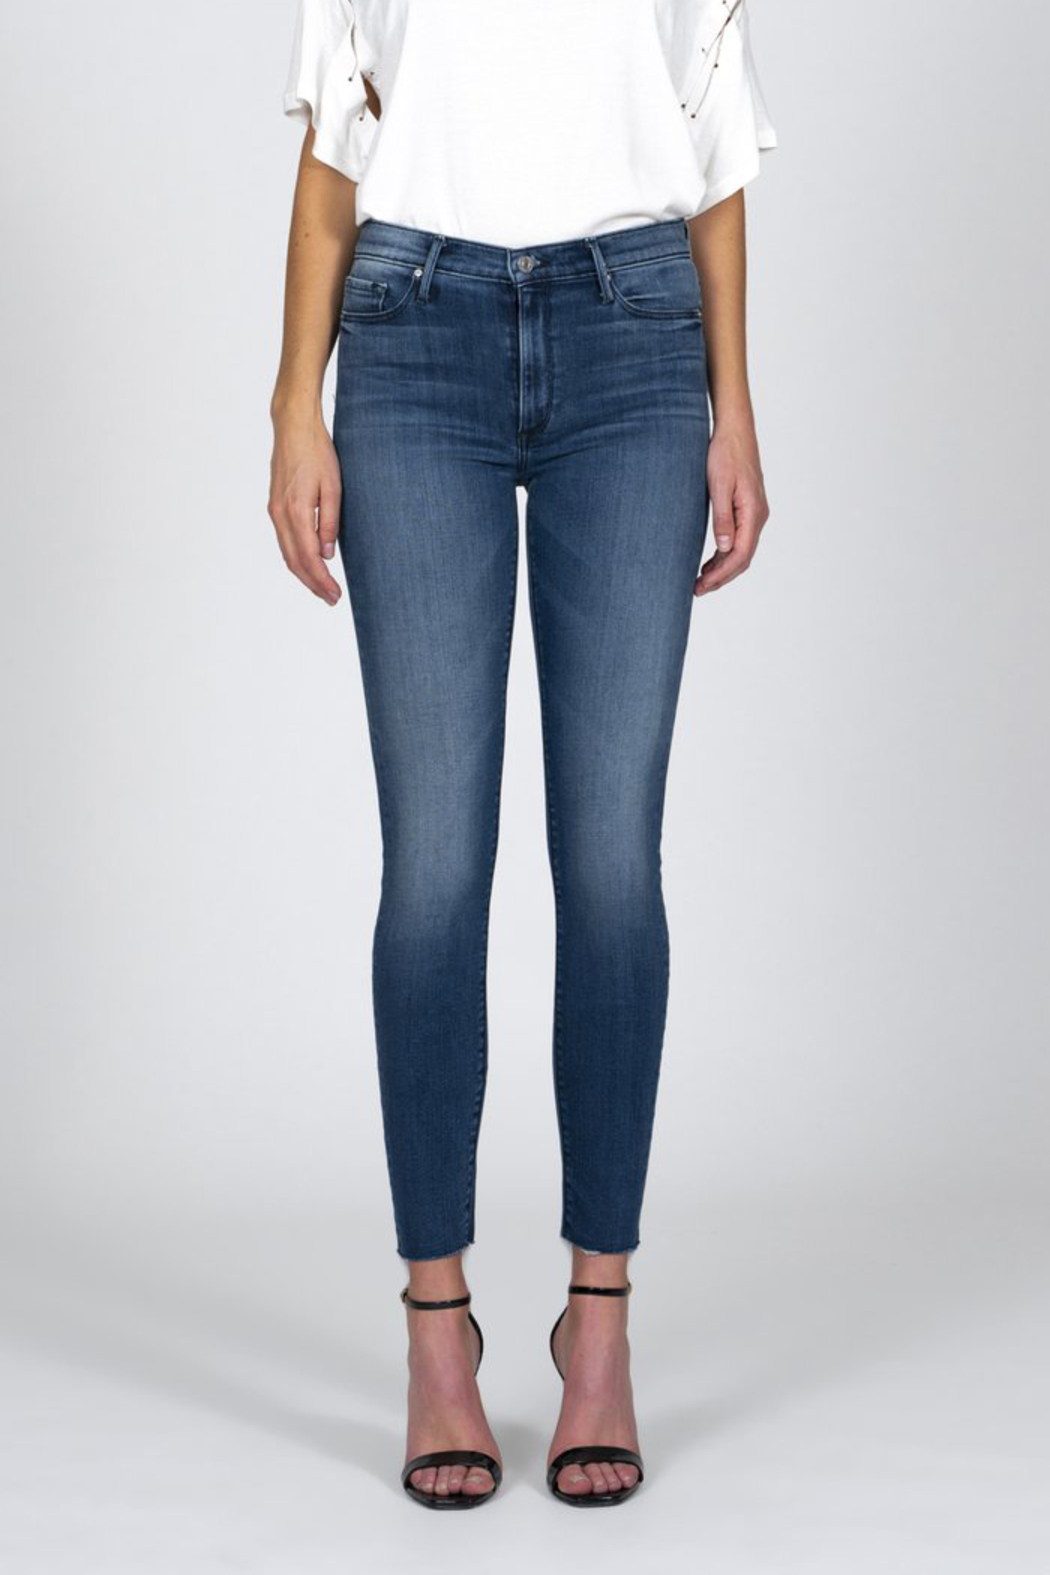 Black Orchid Denim BLACK ORCHID CARMEN HIGH RISE ANKLE FRAY JEAN - Front Full Image